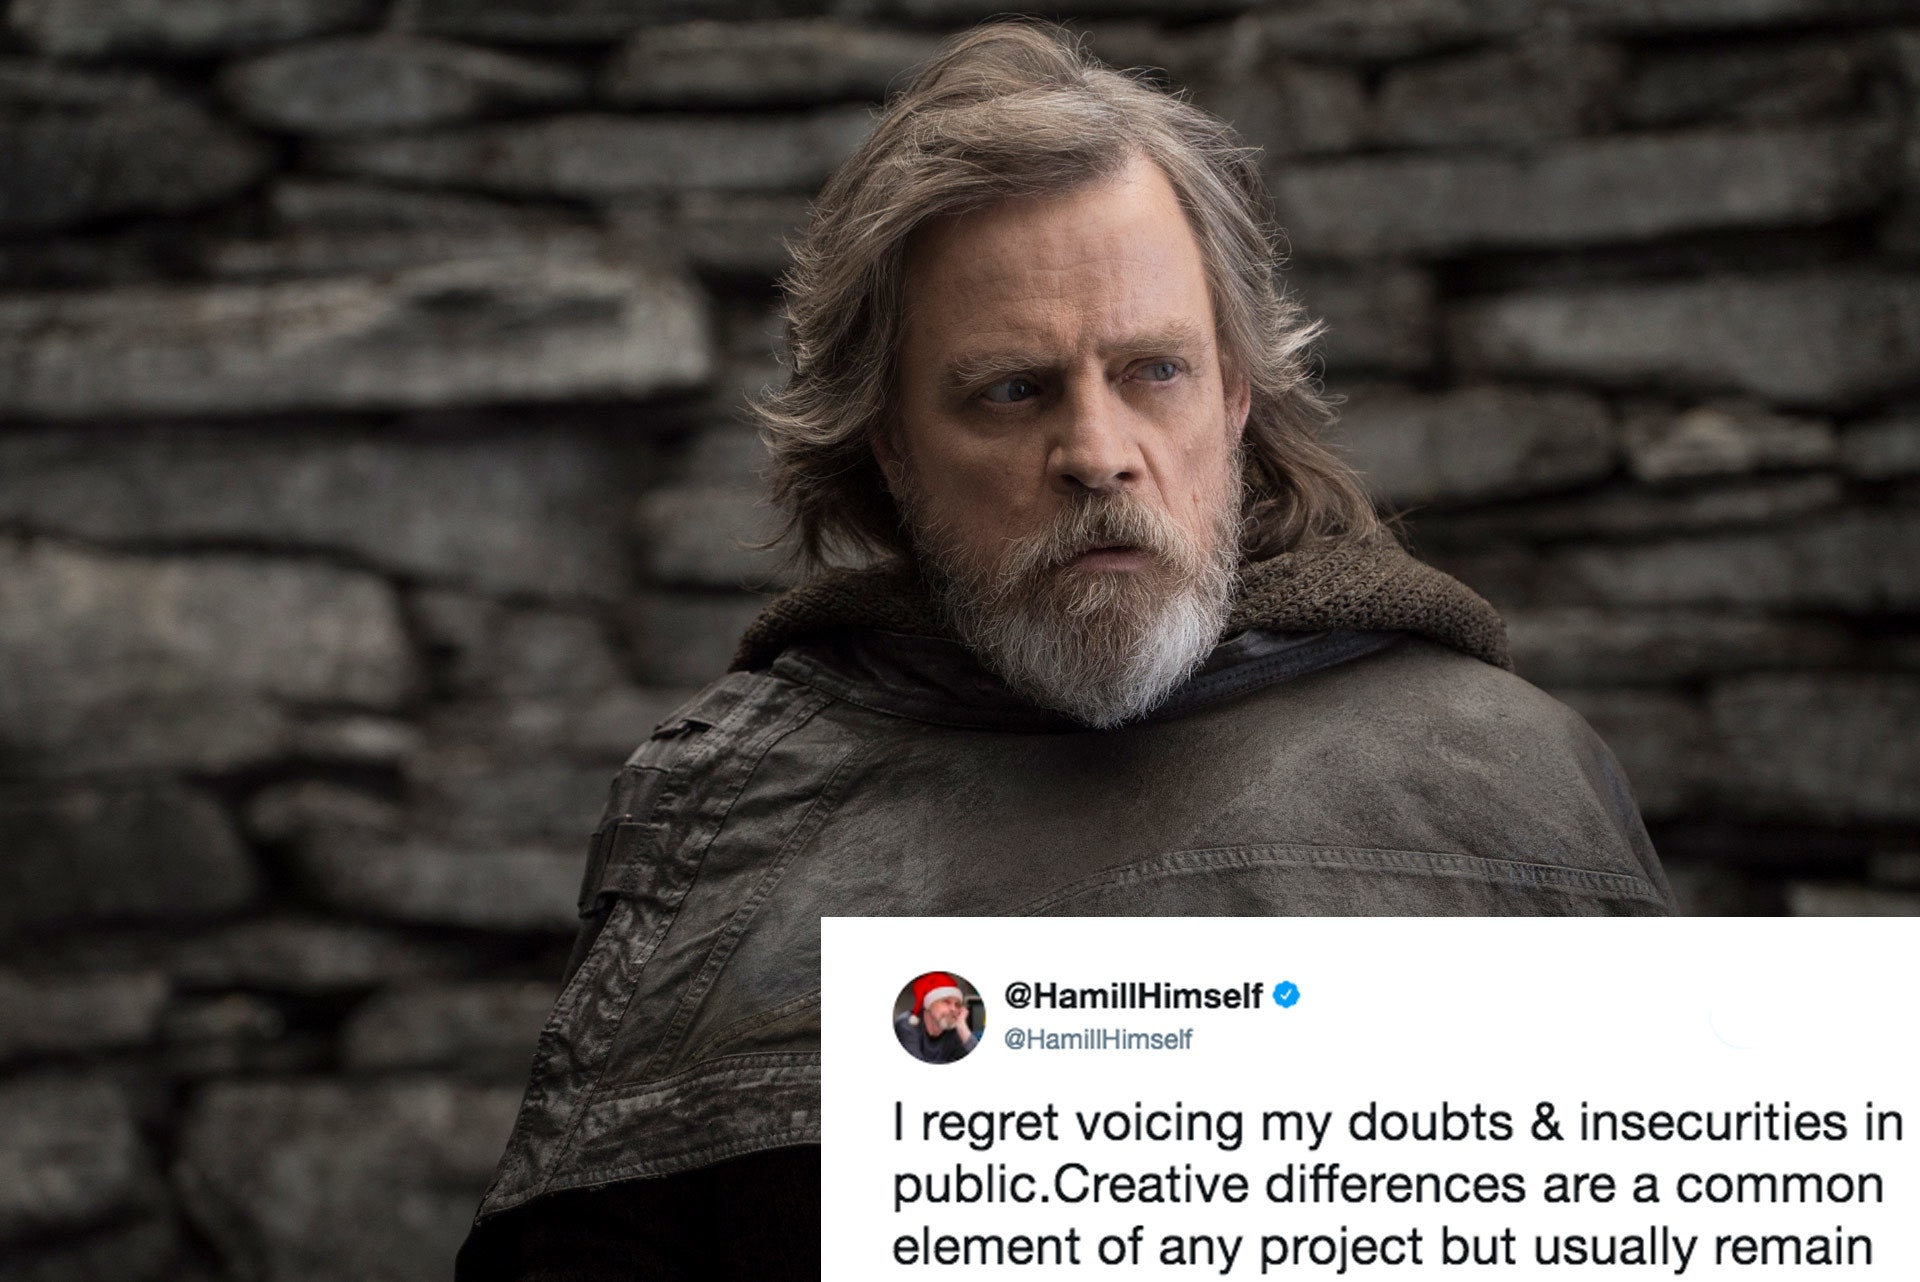 The Last Jedi tops Christmas box office in North America